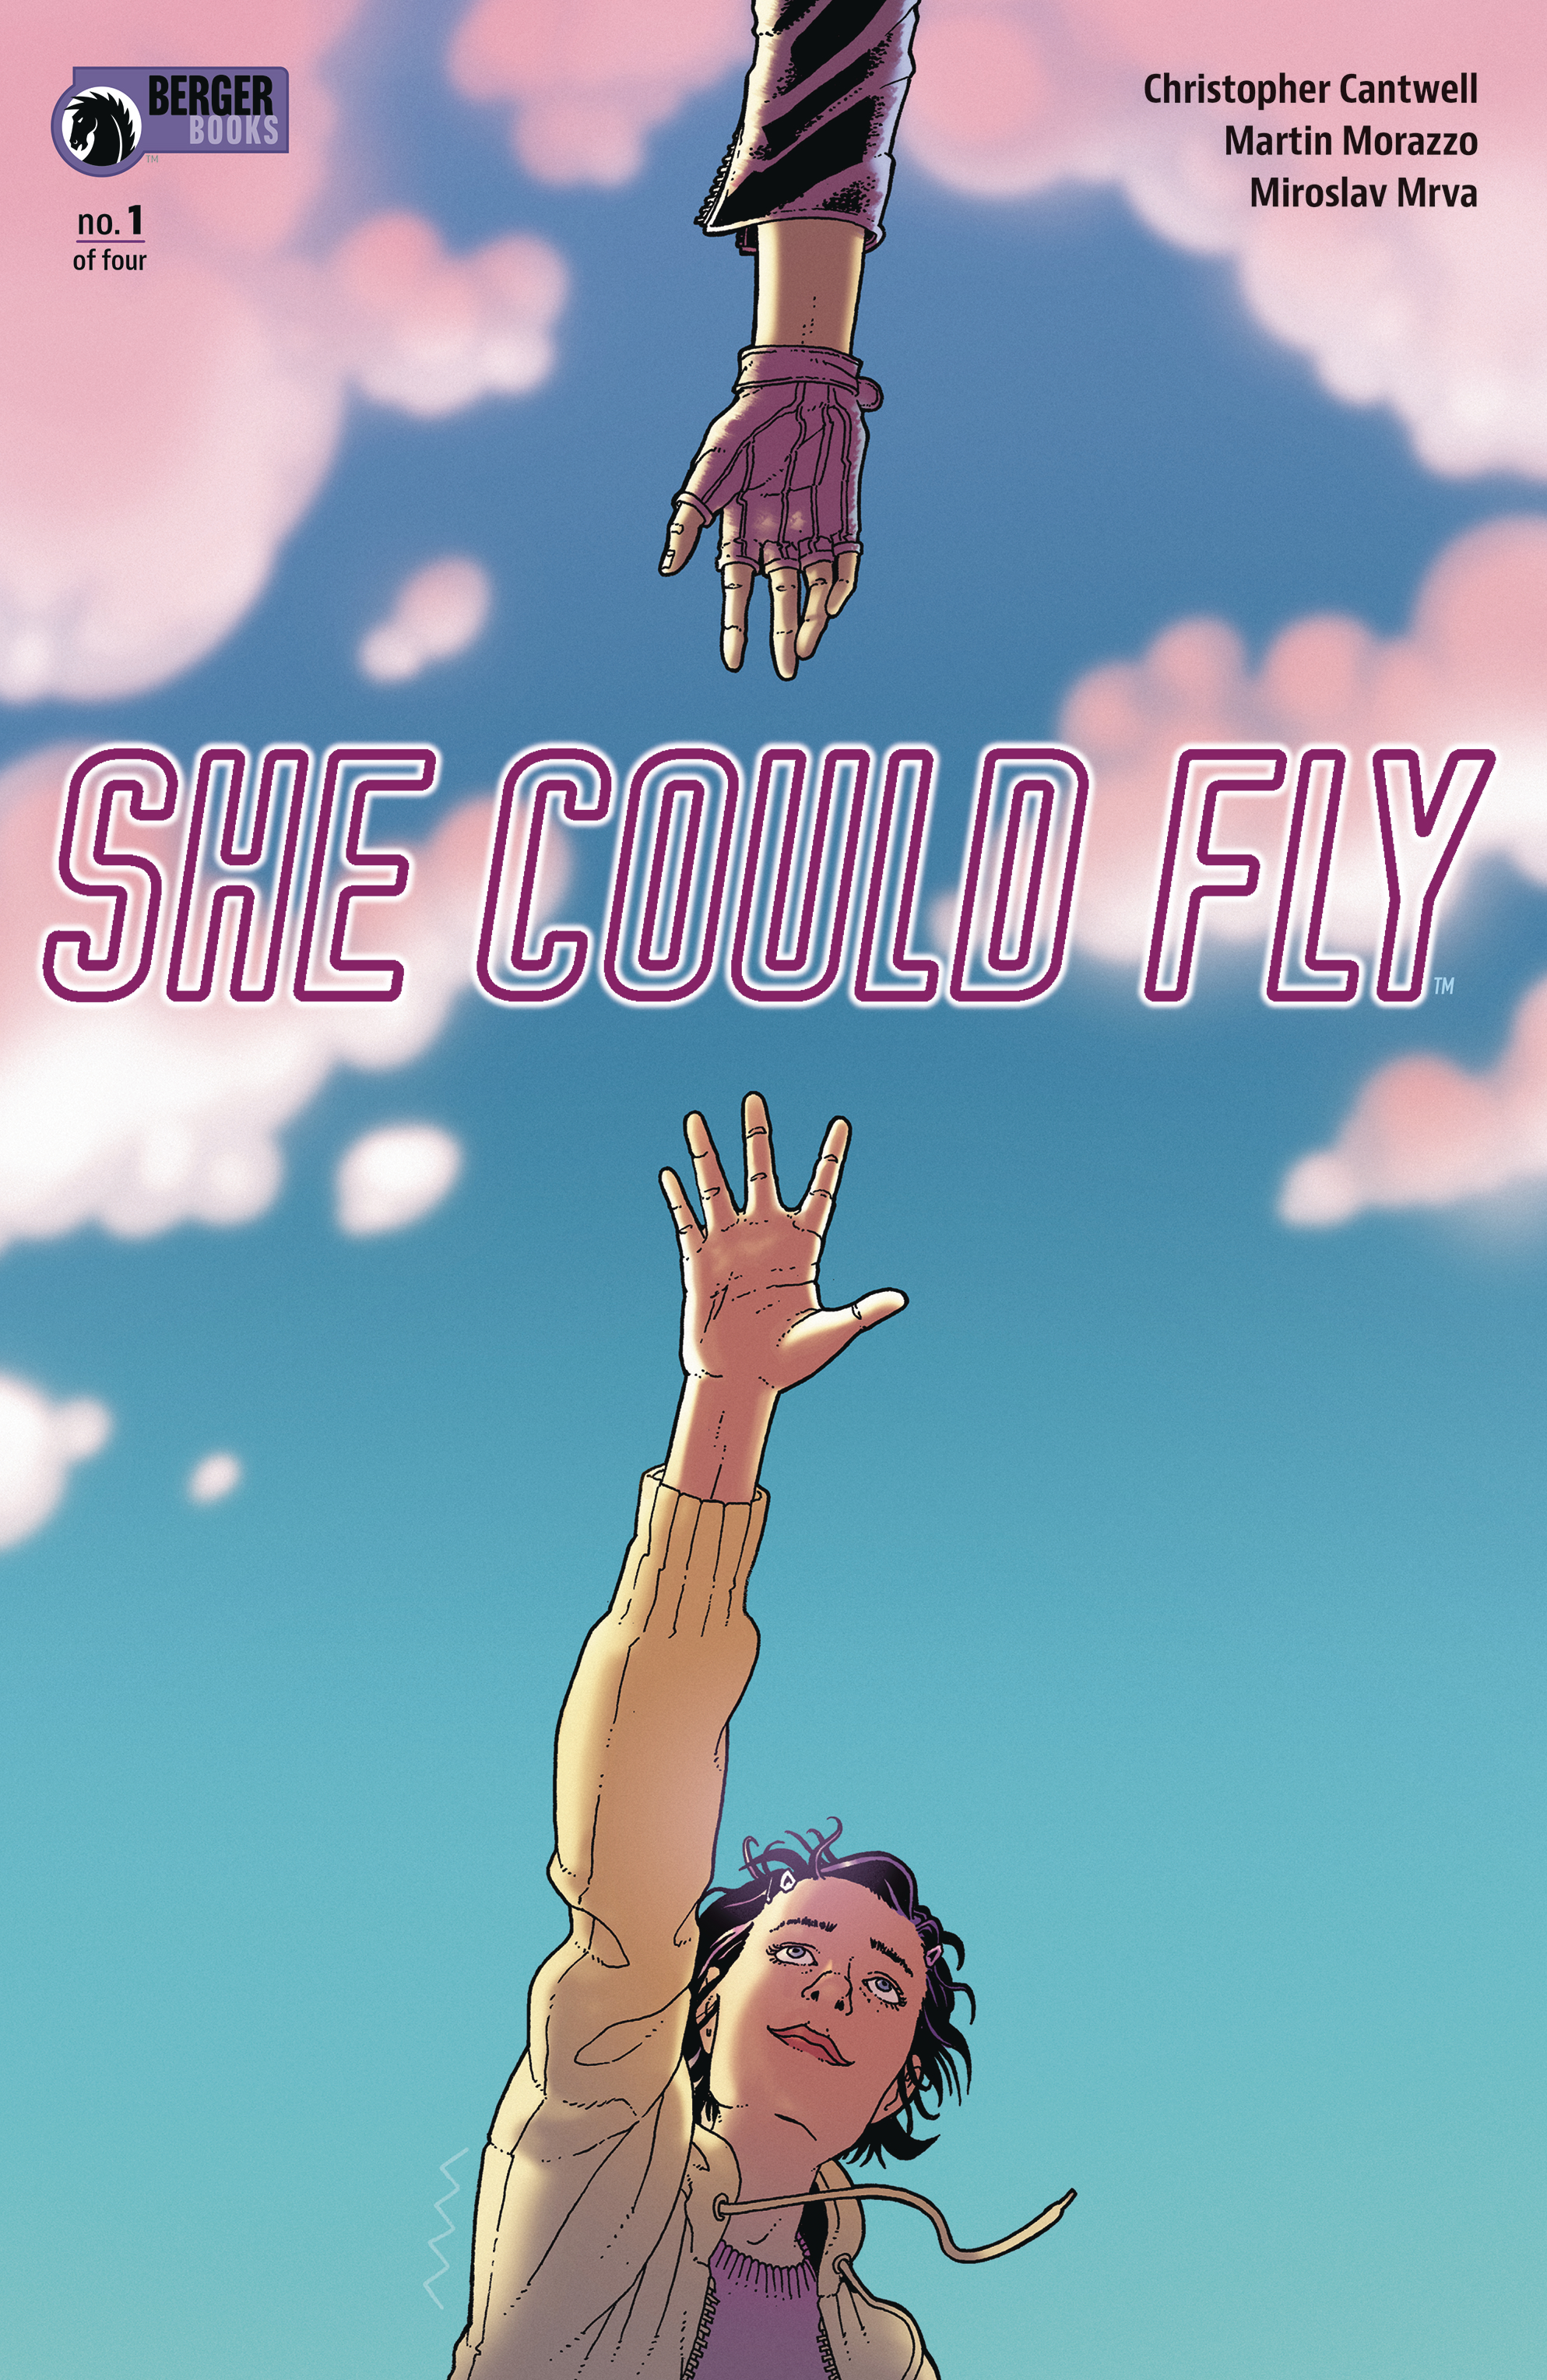 Cover to 'She Could Fly' #1. Art by Martin Morazzo and Miroslav Mrva/Berger Books/Dark Horse Comics